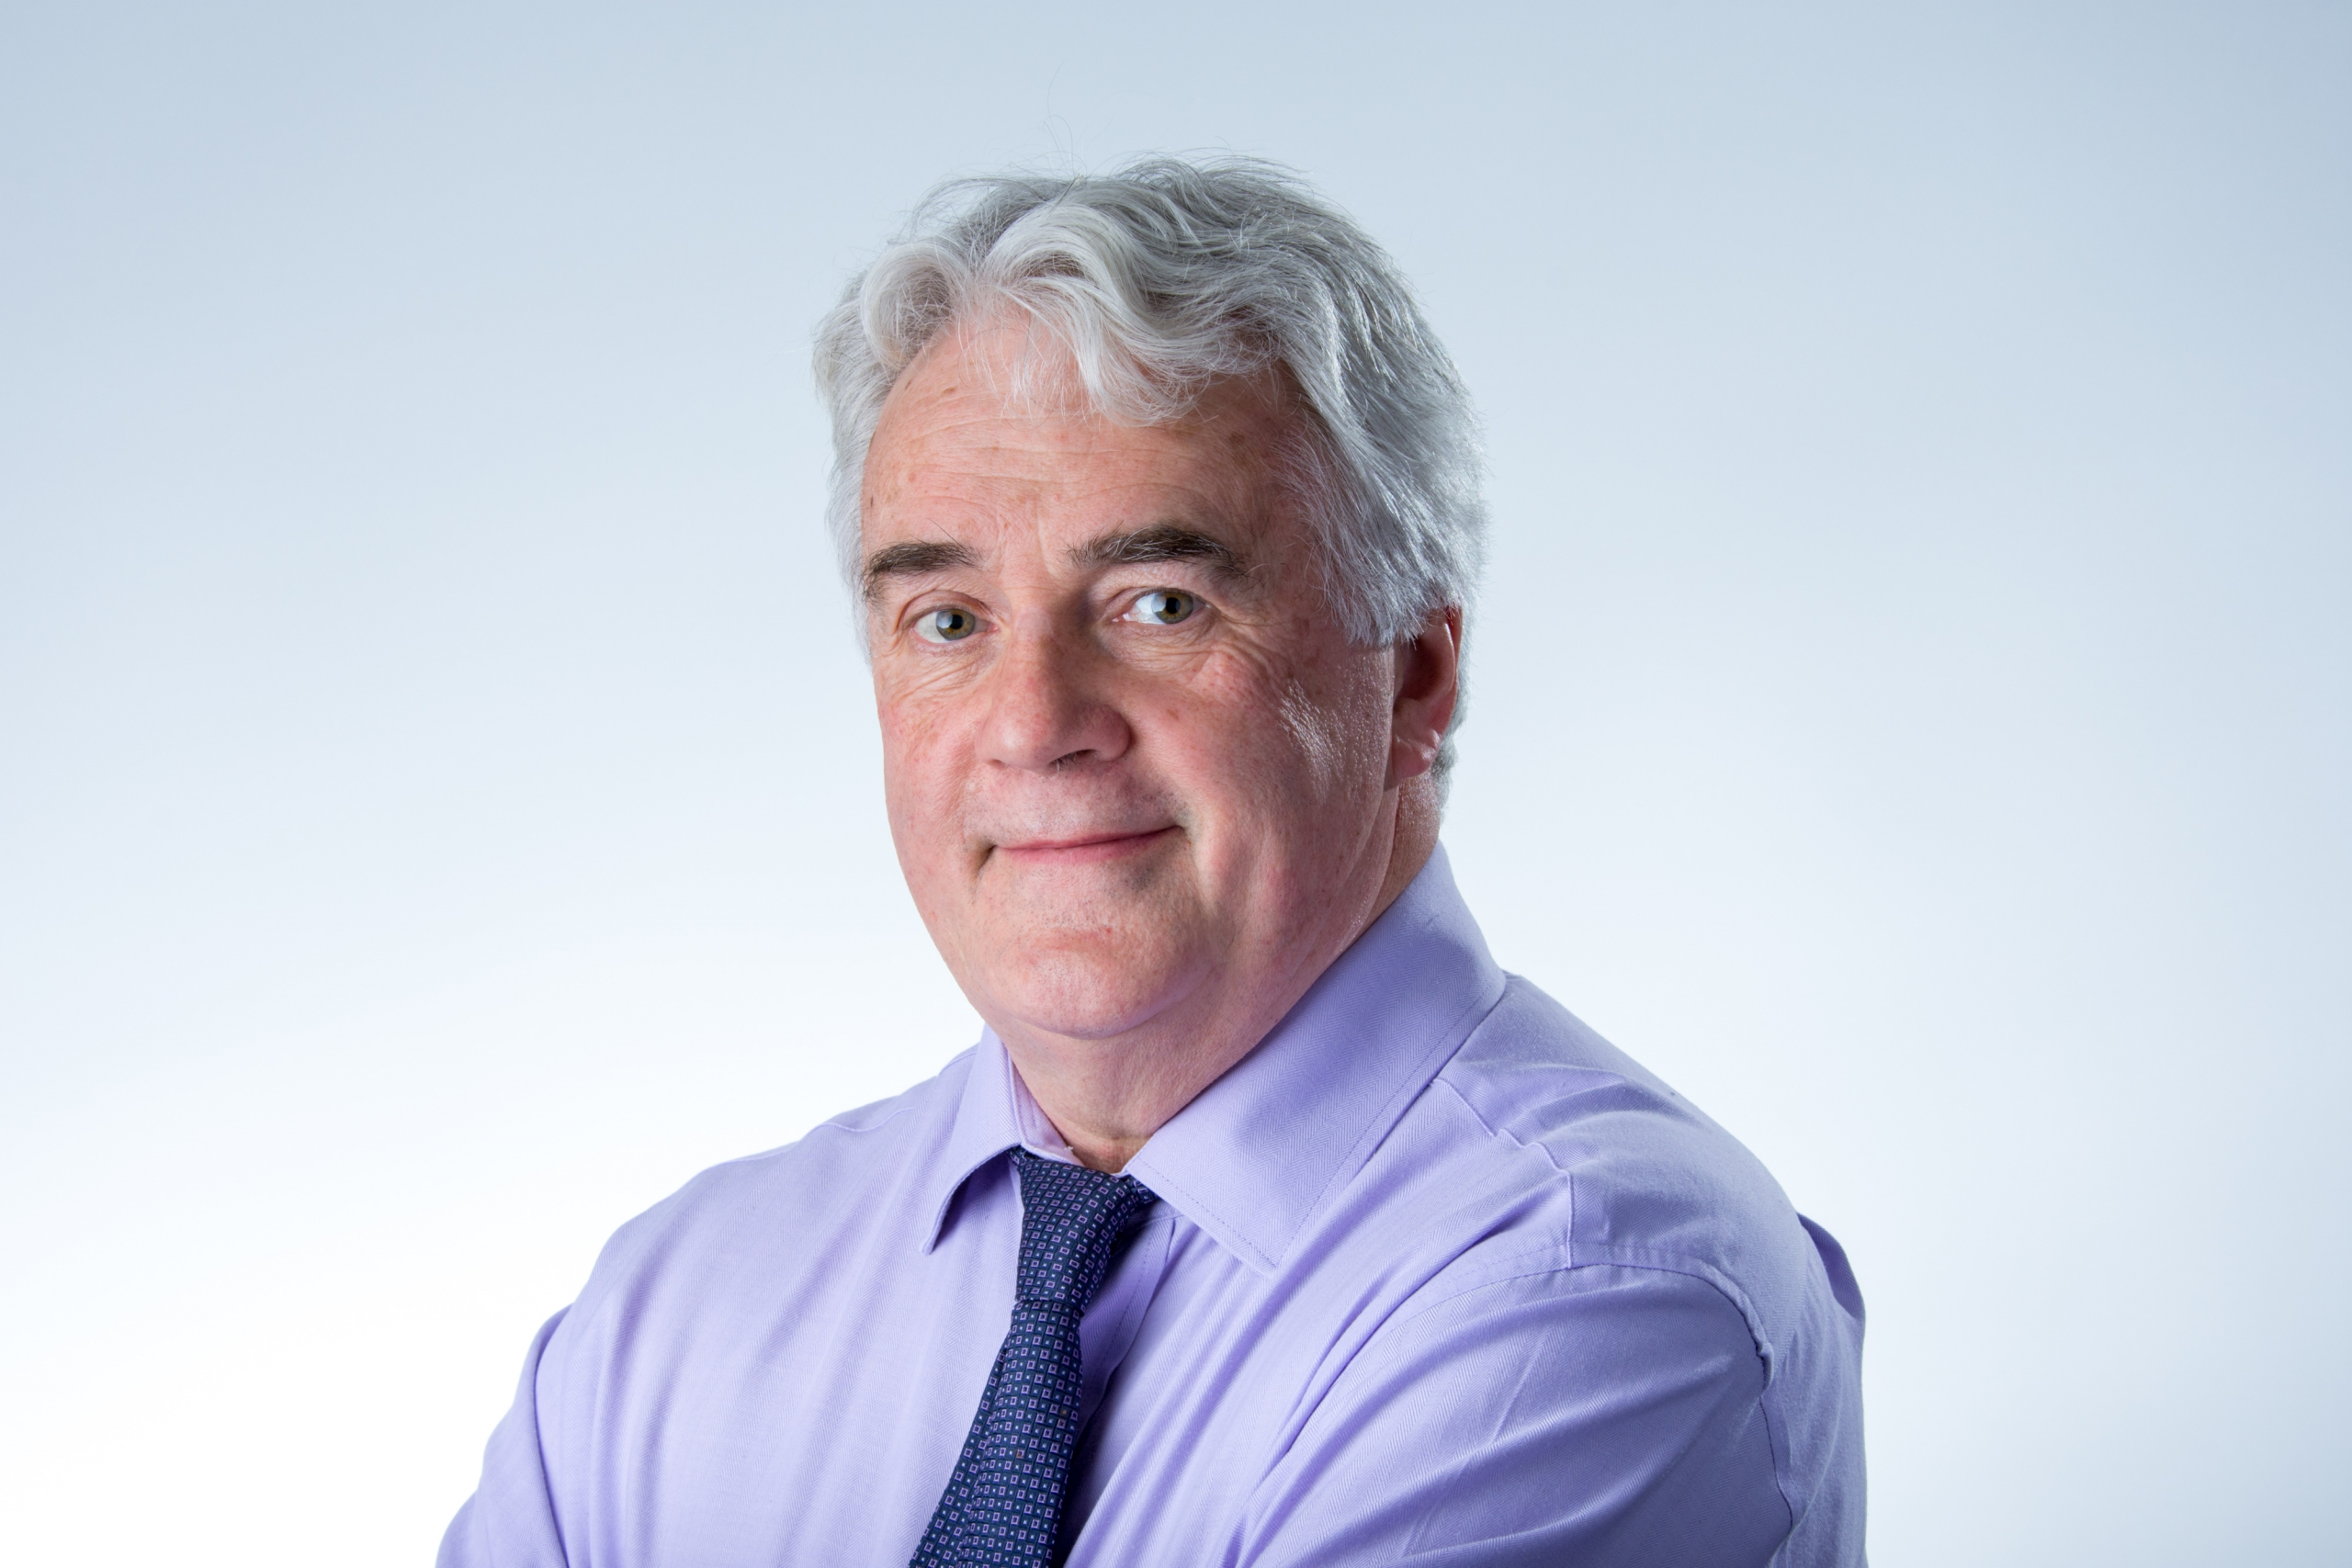 Peter O'Connor – Head of Engineering